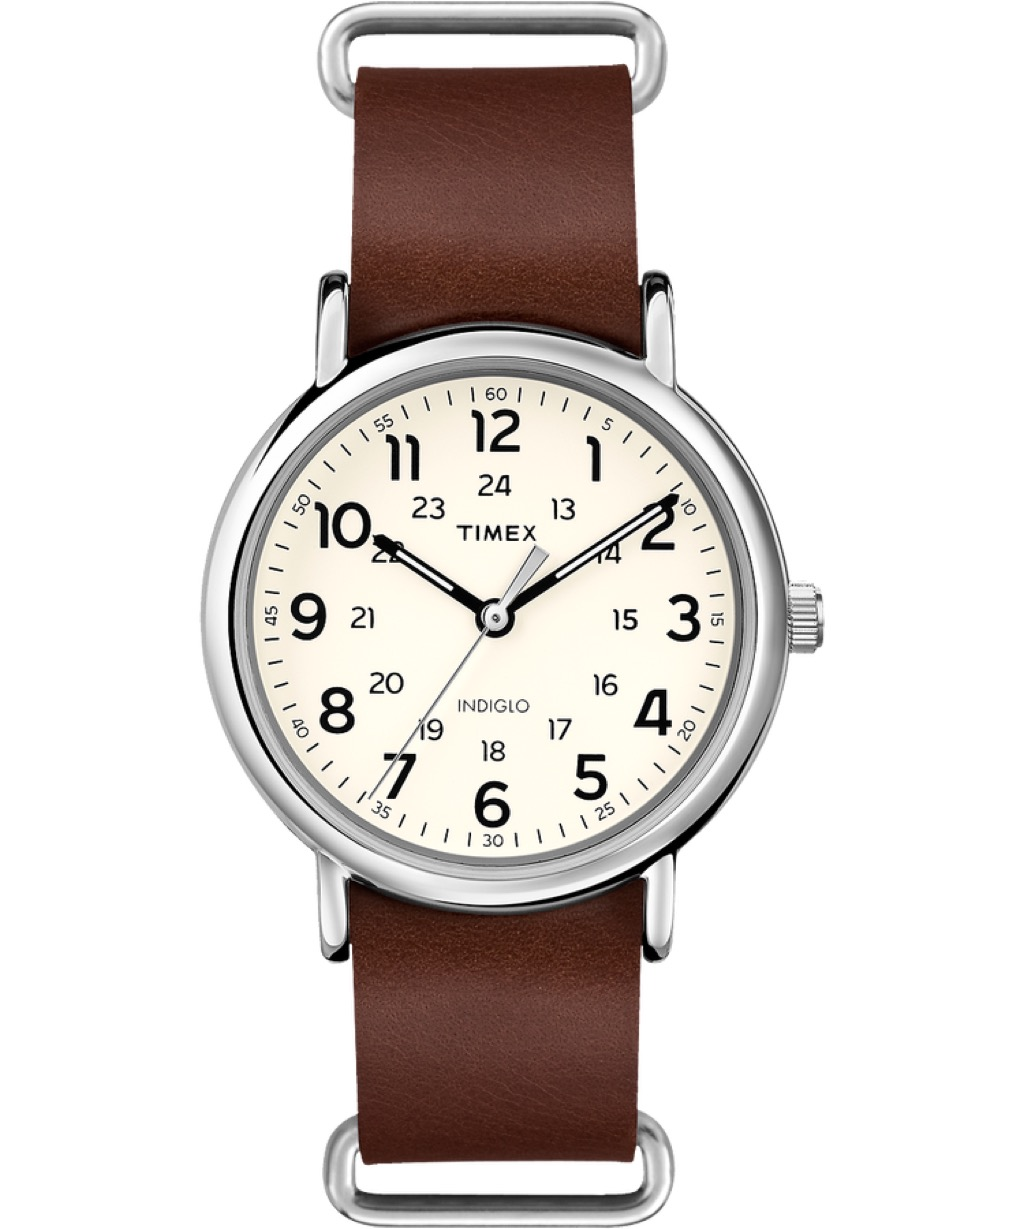 The Timex Weekender is cool vintage watch you can buy right now